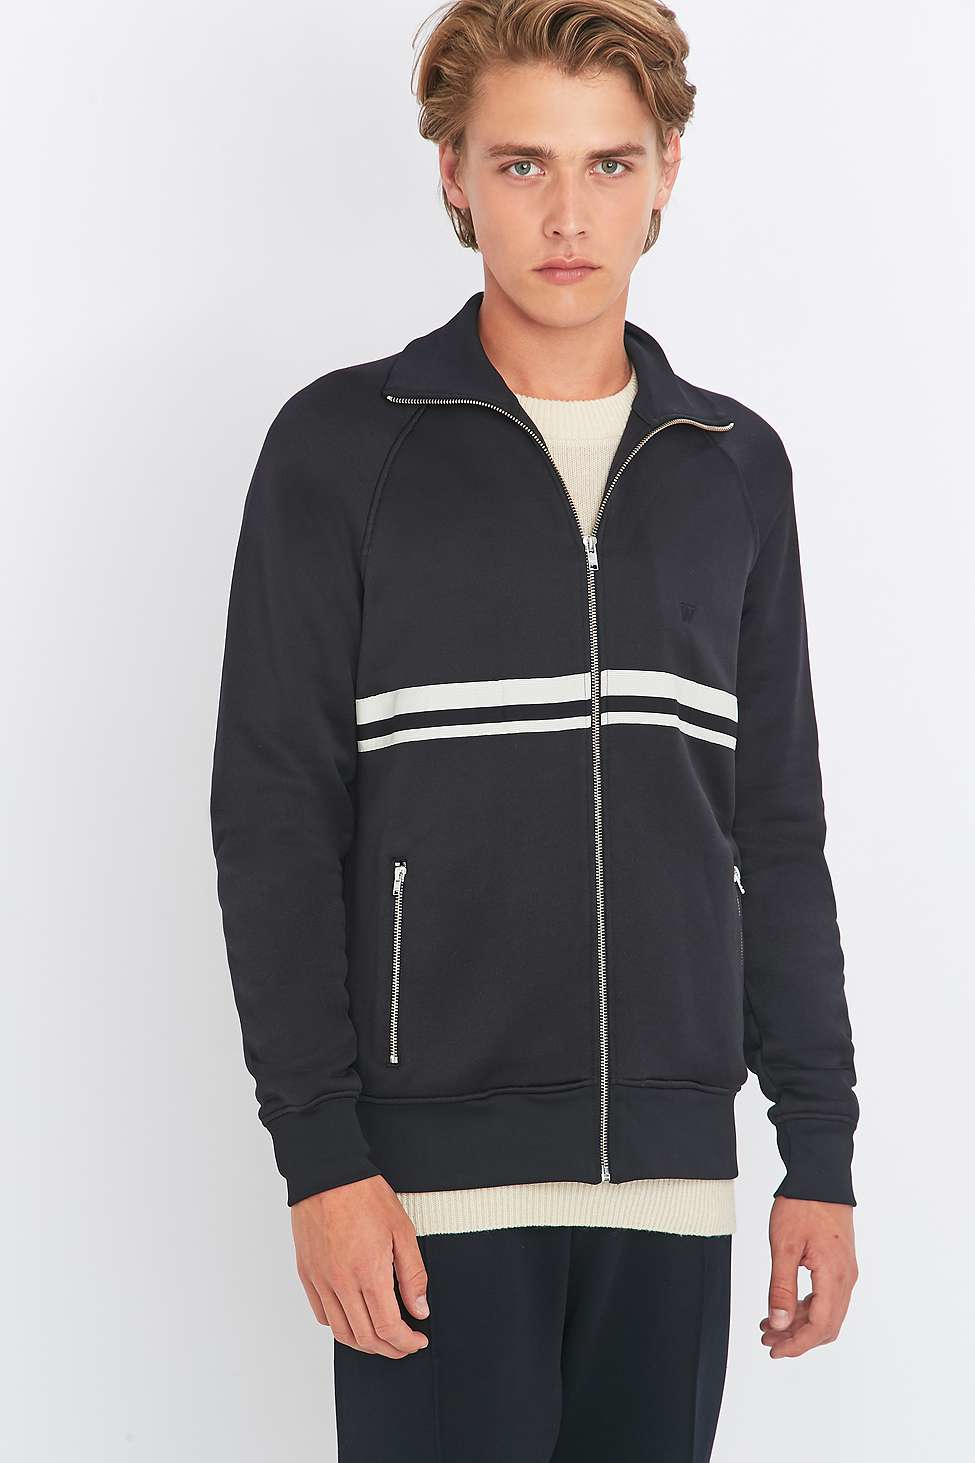 WOOD WOOD Cotton Randall Black Track Top for Men